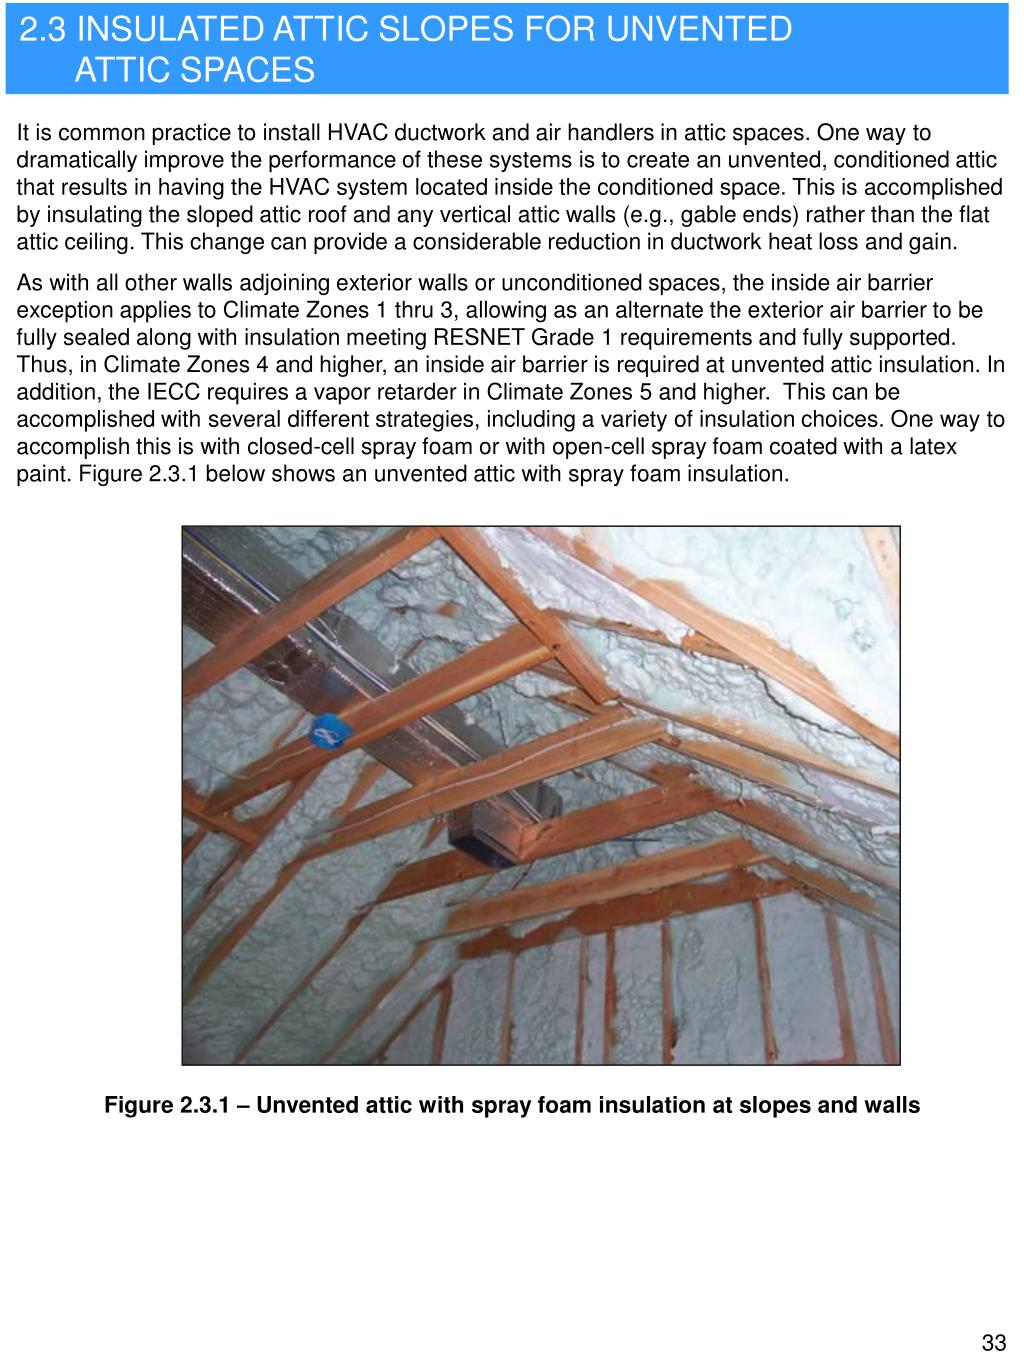 2.3 INSULATED ATTIC SLOPES FOR UNVENTED